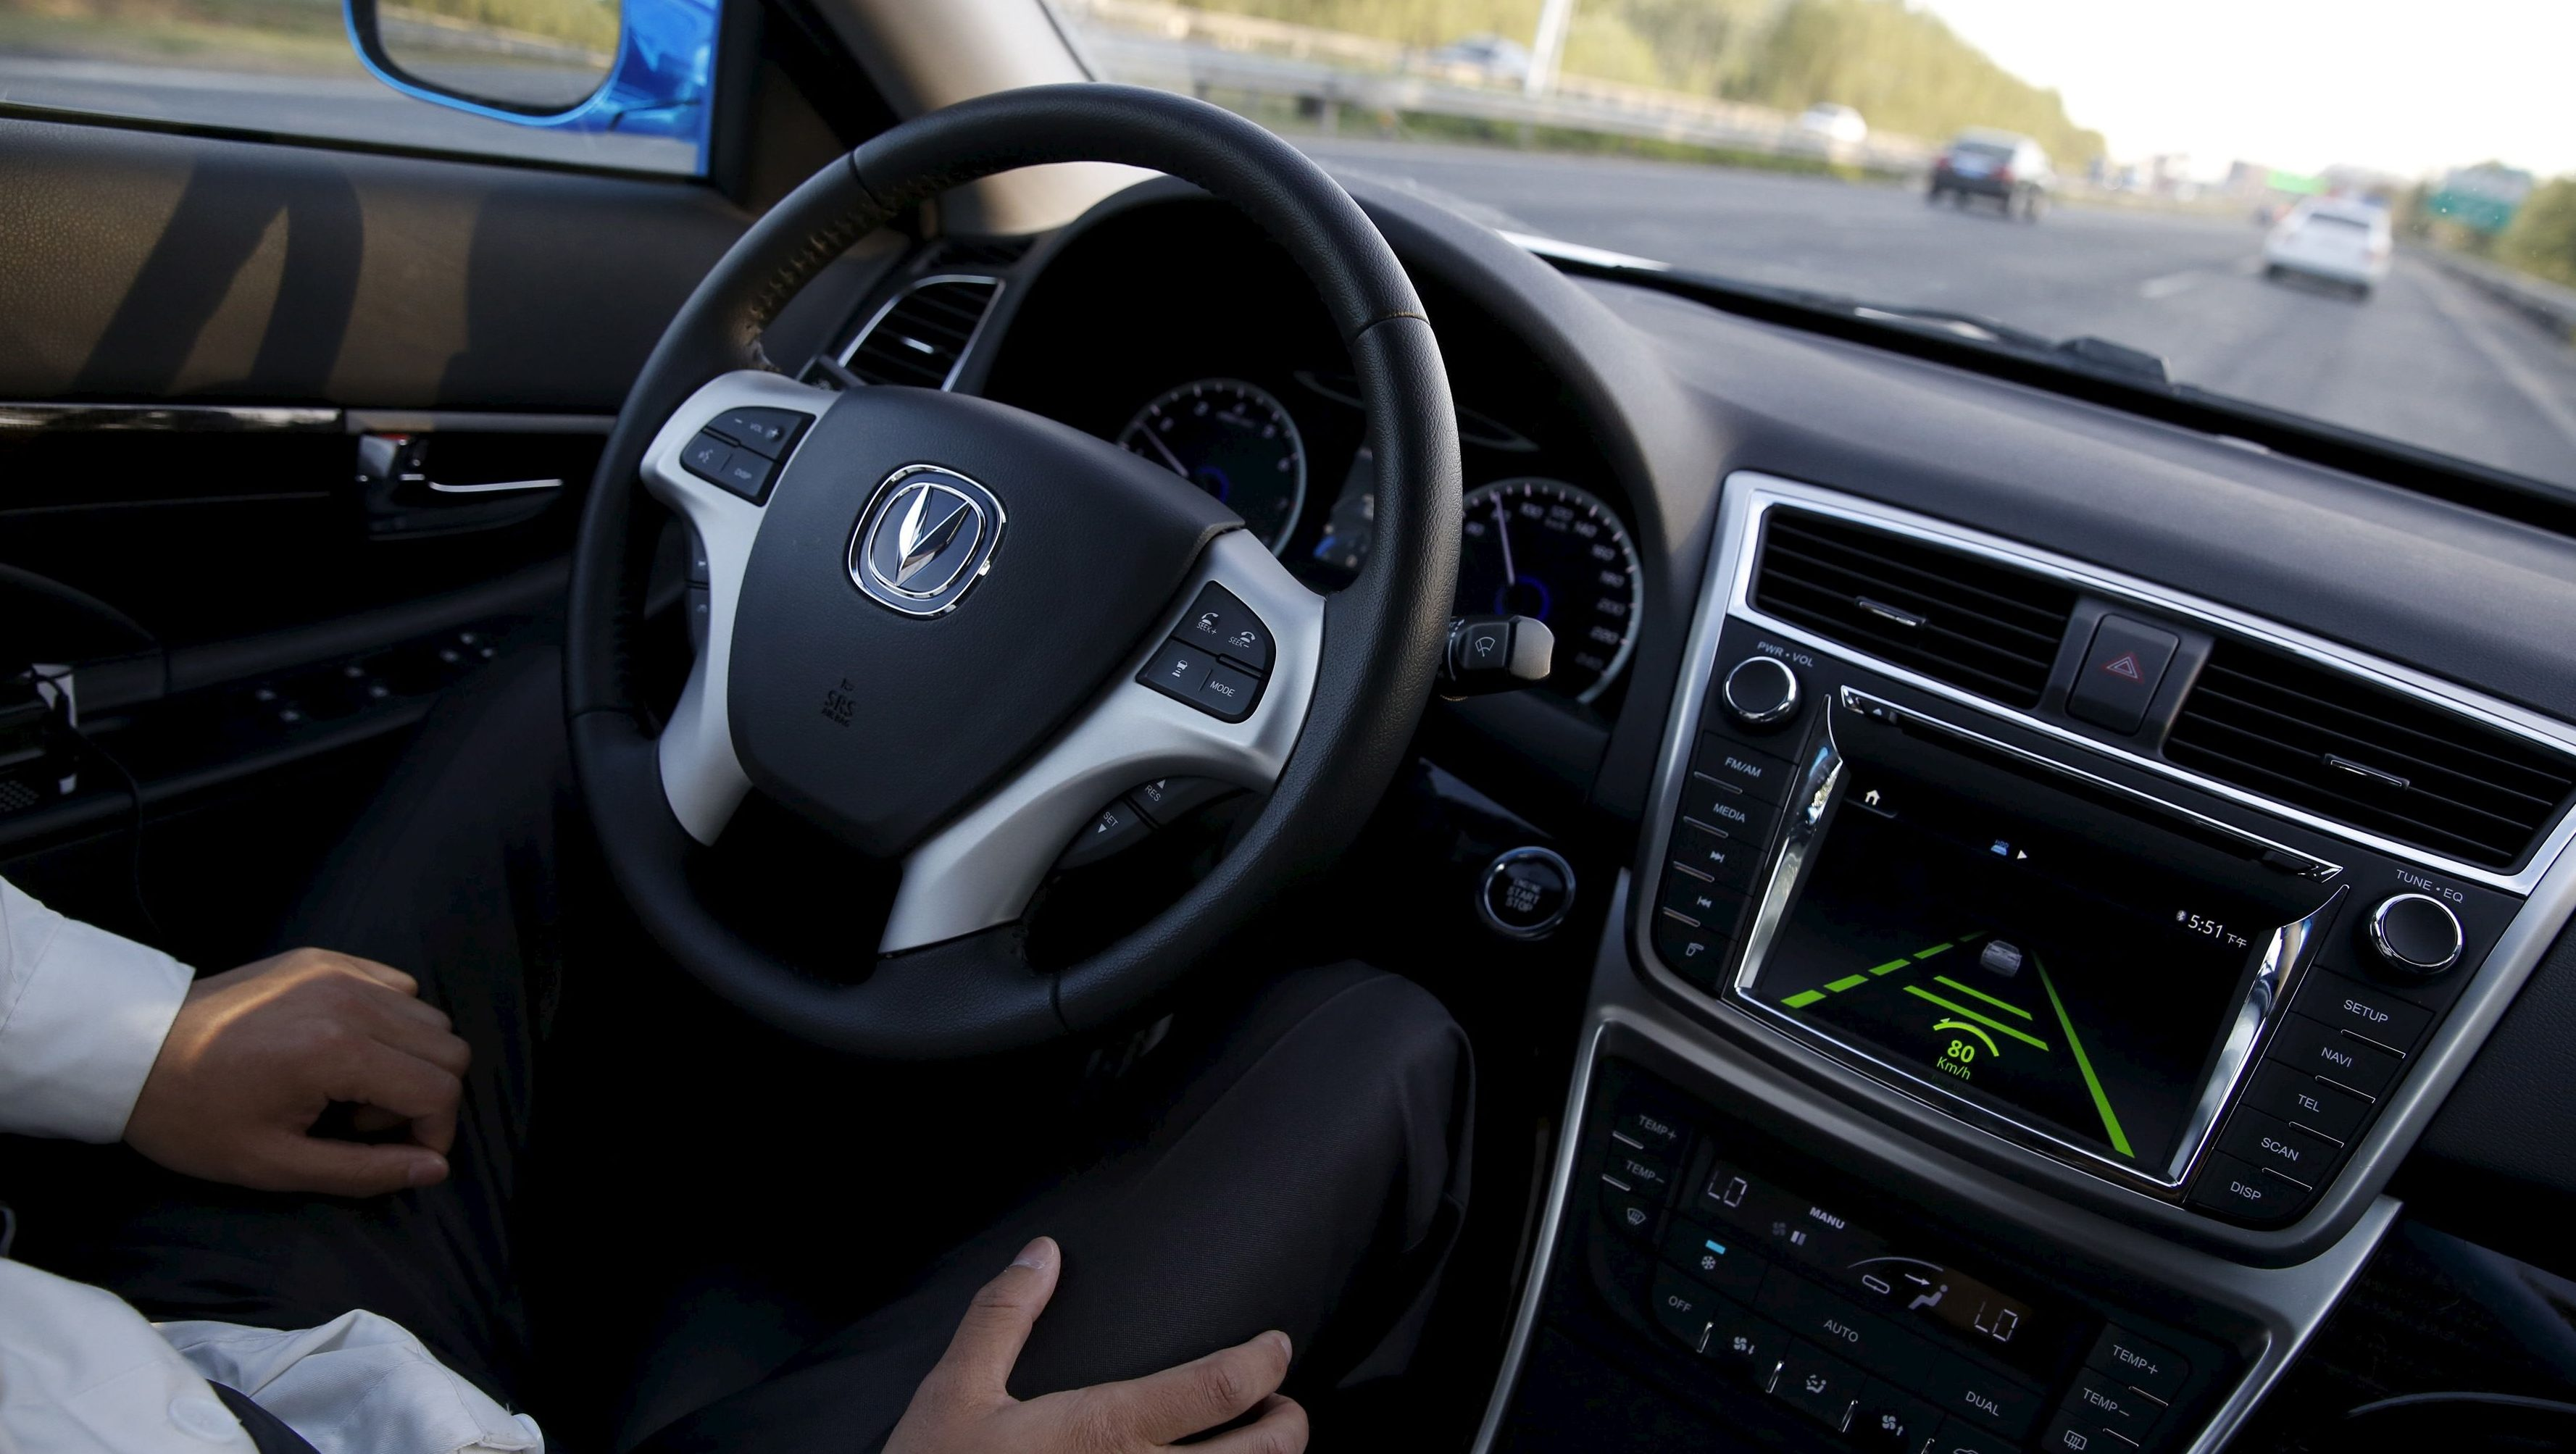 Li Zengwen, a development engineer at Changan Automobile, removes his hands from the steering wheel while the car is on self-driving mode during a test drive on a highway in Beijing, China, April 16, 2016.